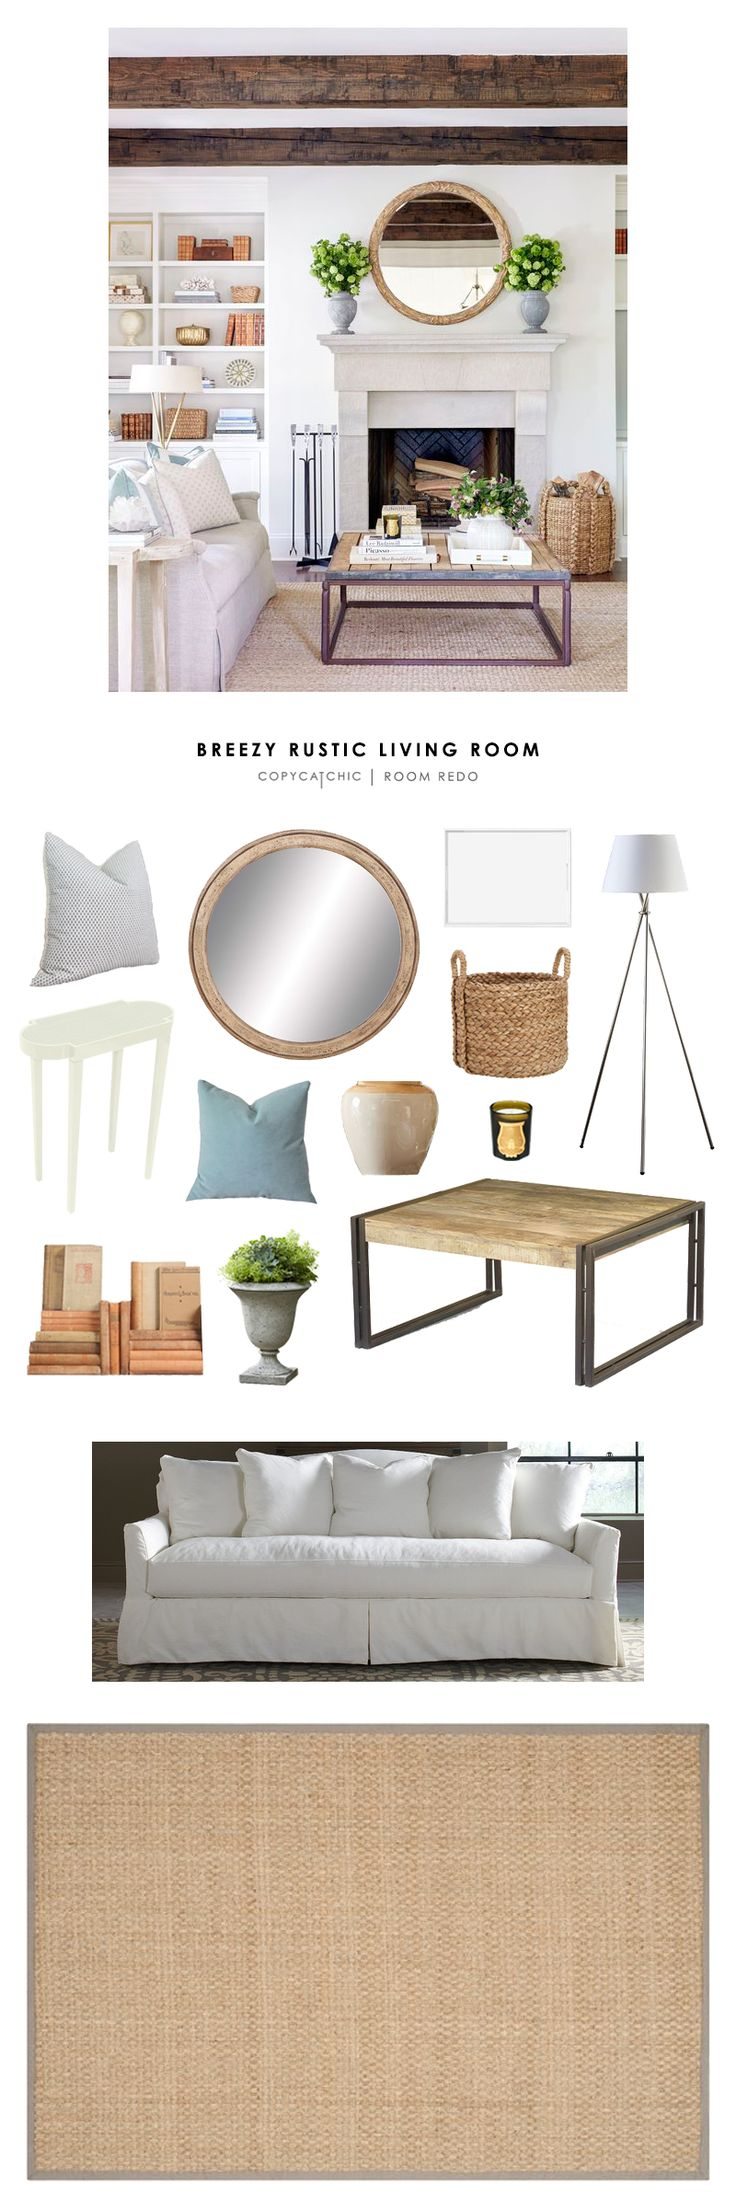 Copy Cat Chic Room Redo | Breezy Rustic Living Room